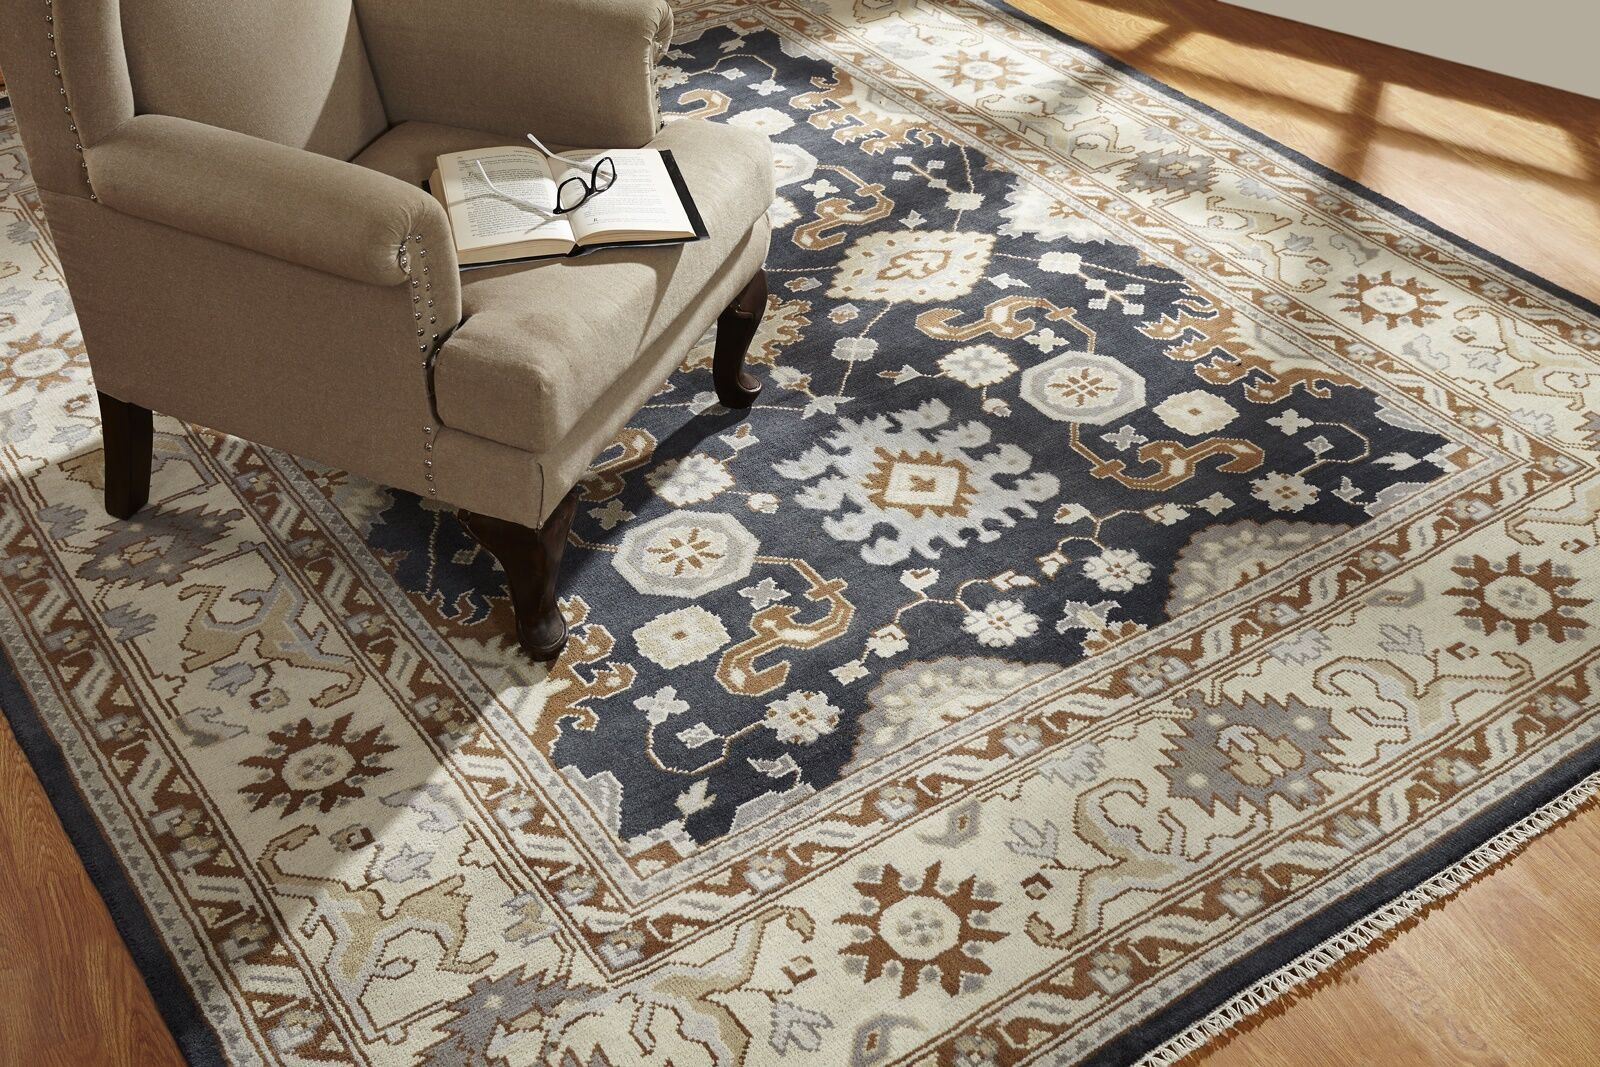 Wright Hand Knotted Wool Black/Ivory Area Rug Rug Size: Rectangle 9' x 12'